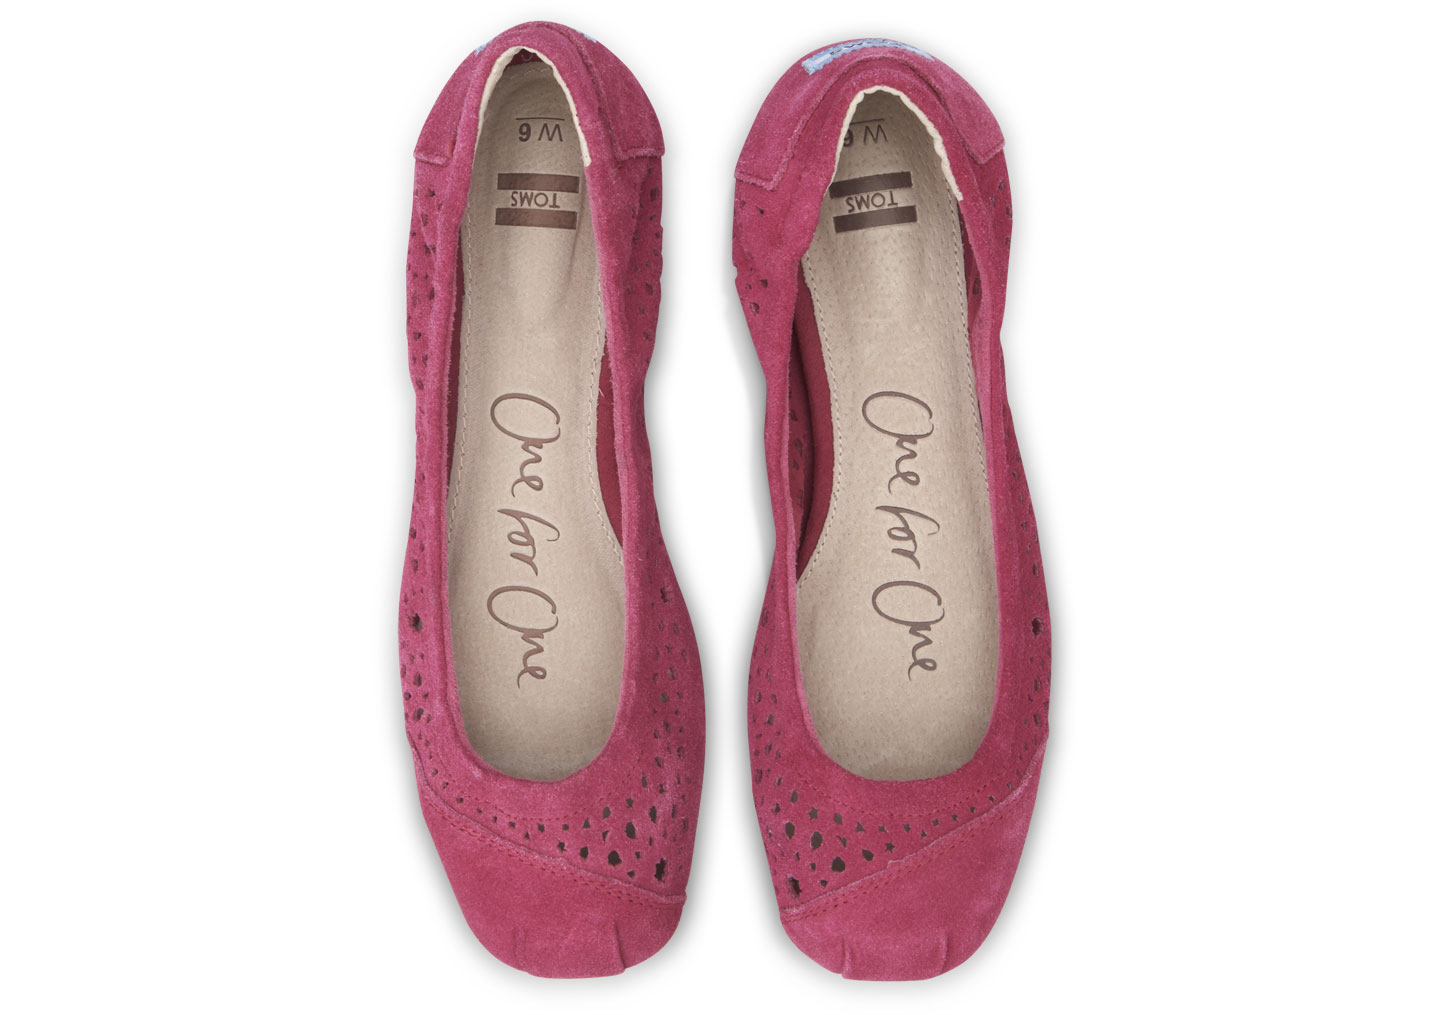 Pink Women's Flats: newbez.ml - Your Online Women's Shoes Store! Get 5% in rewards with Club O! Me Too Womens Lilyana Leather Ballet Flat Shoes, Peony Glazed Goat. SALE ends in 2 days. Quick View. kate spade new york Globe Ballet Flats, Deep Pink.